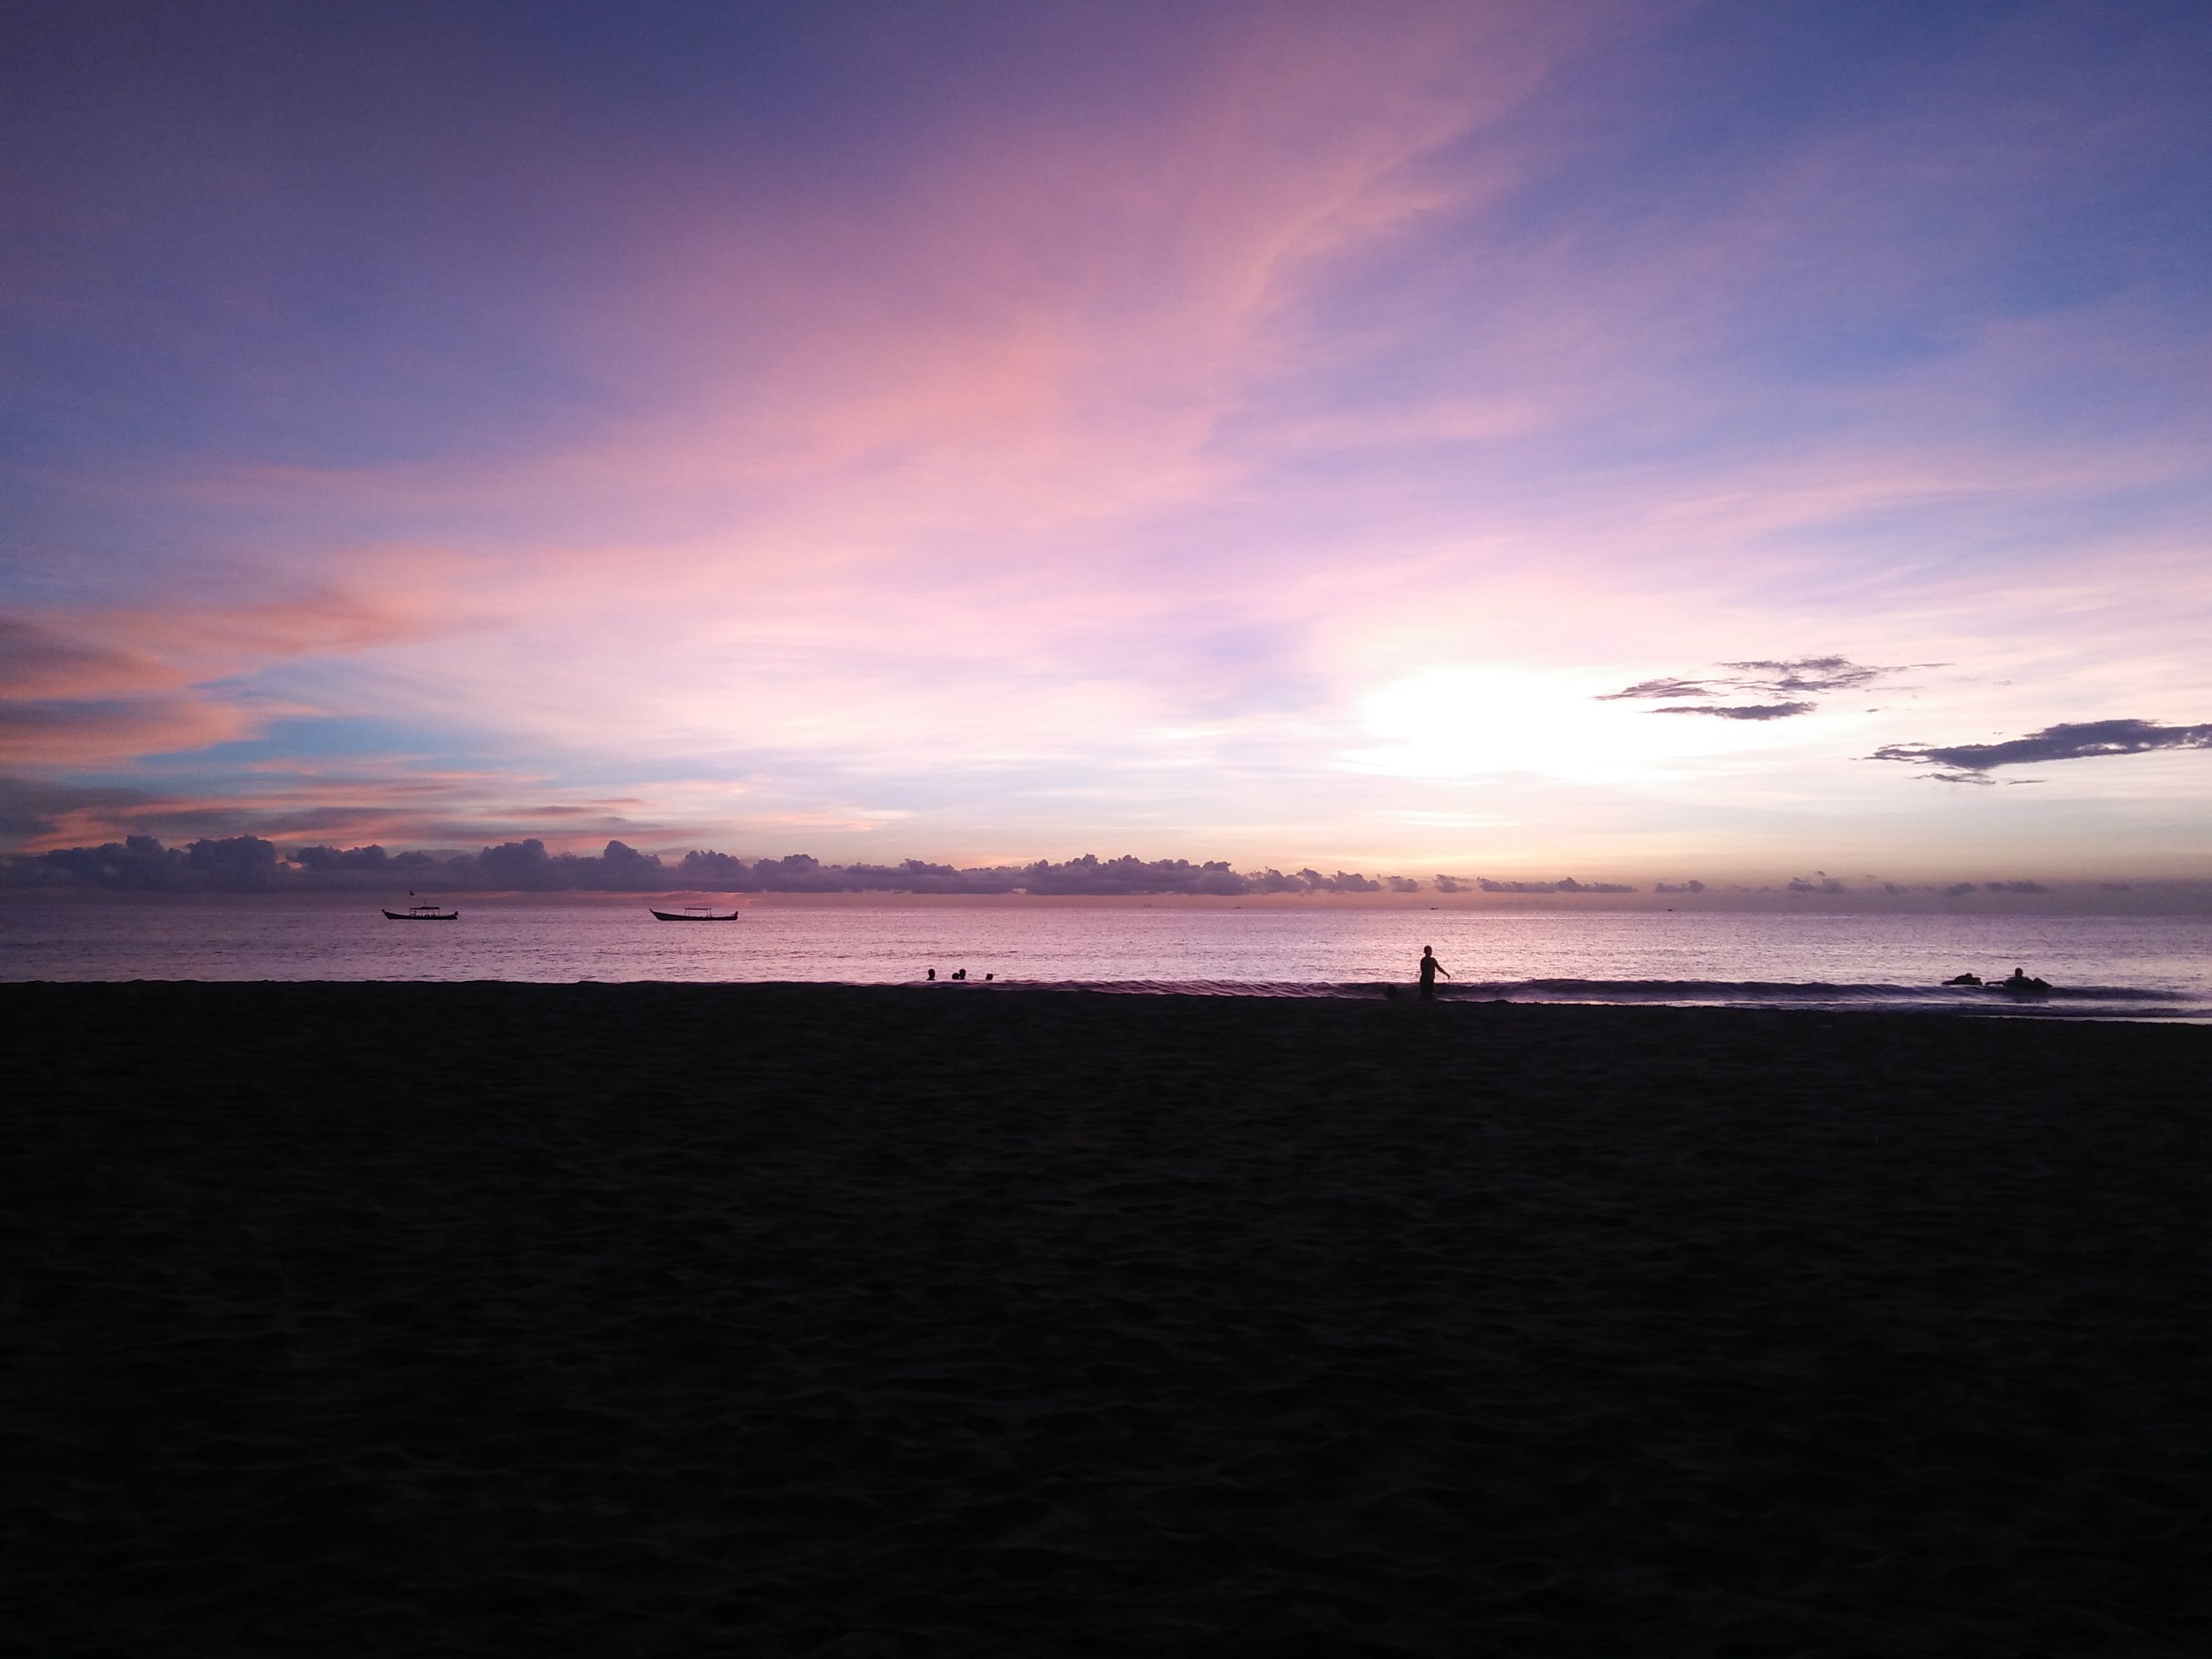 Silhouette Photography of People on Seashore